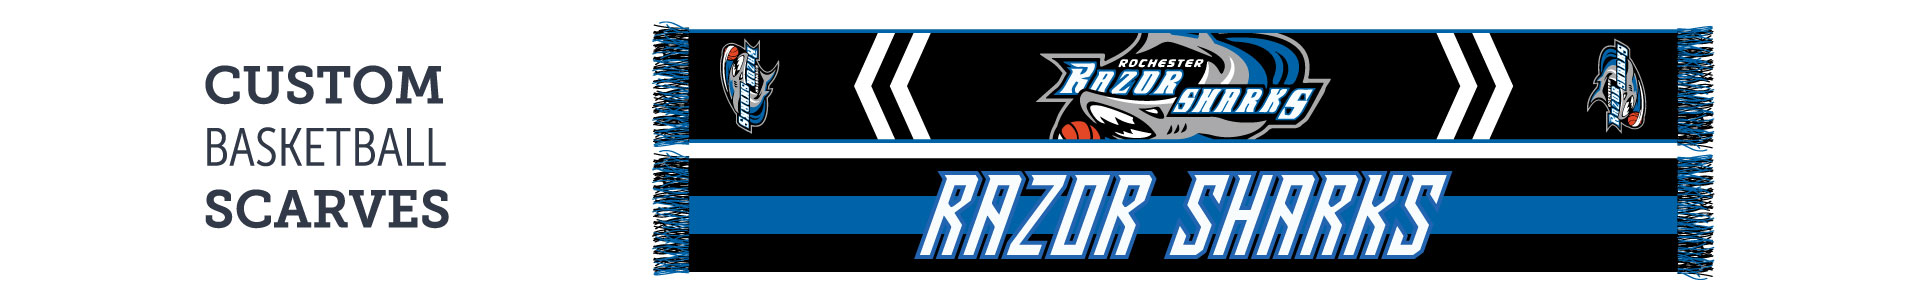 custom basketball scarves